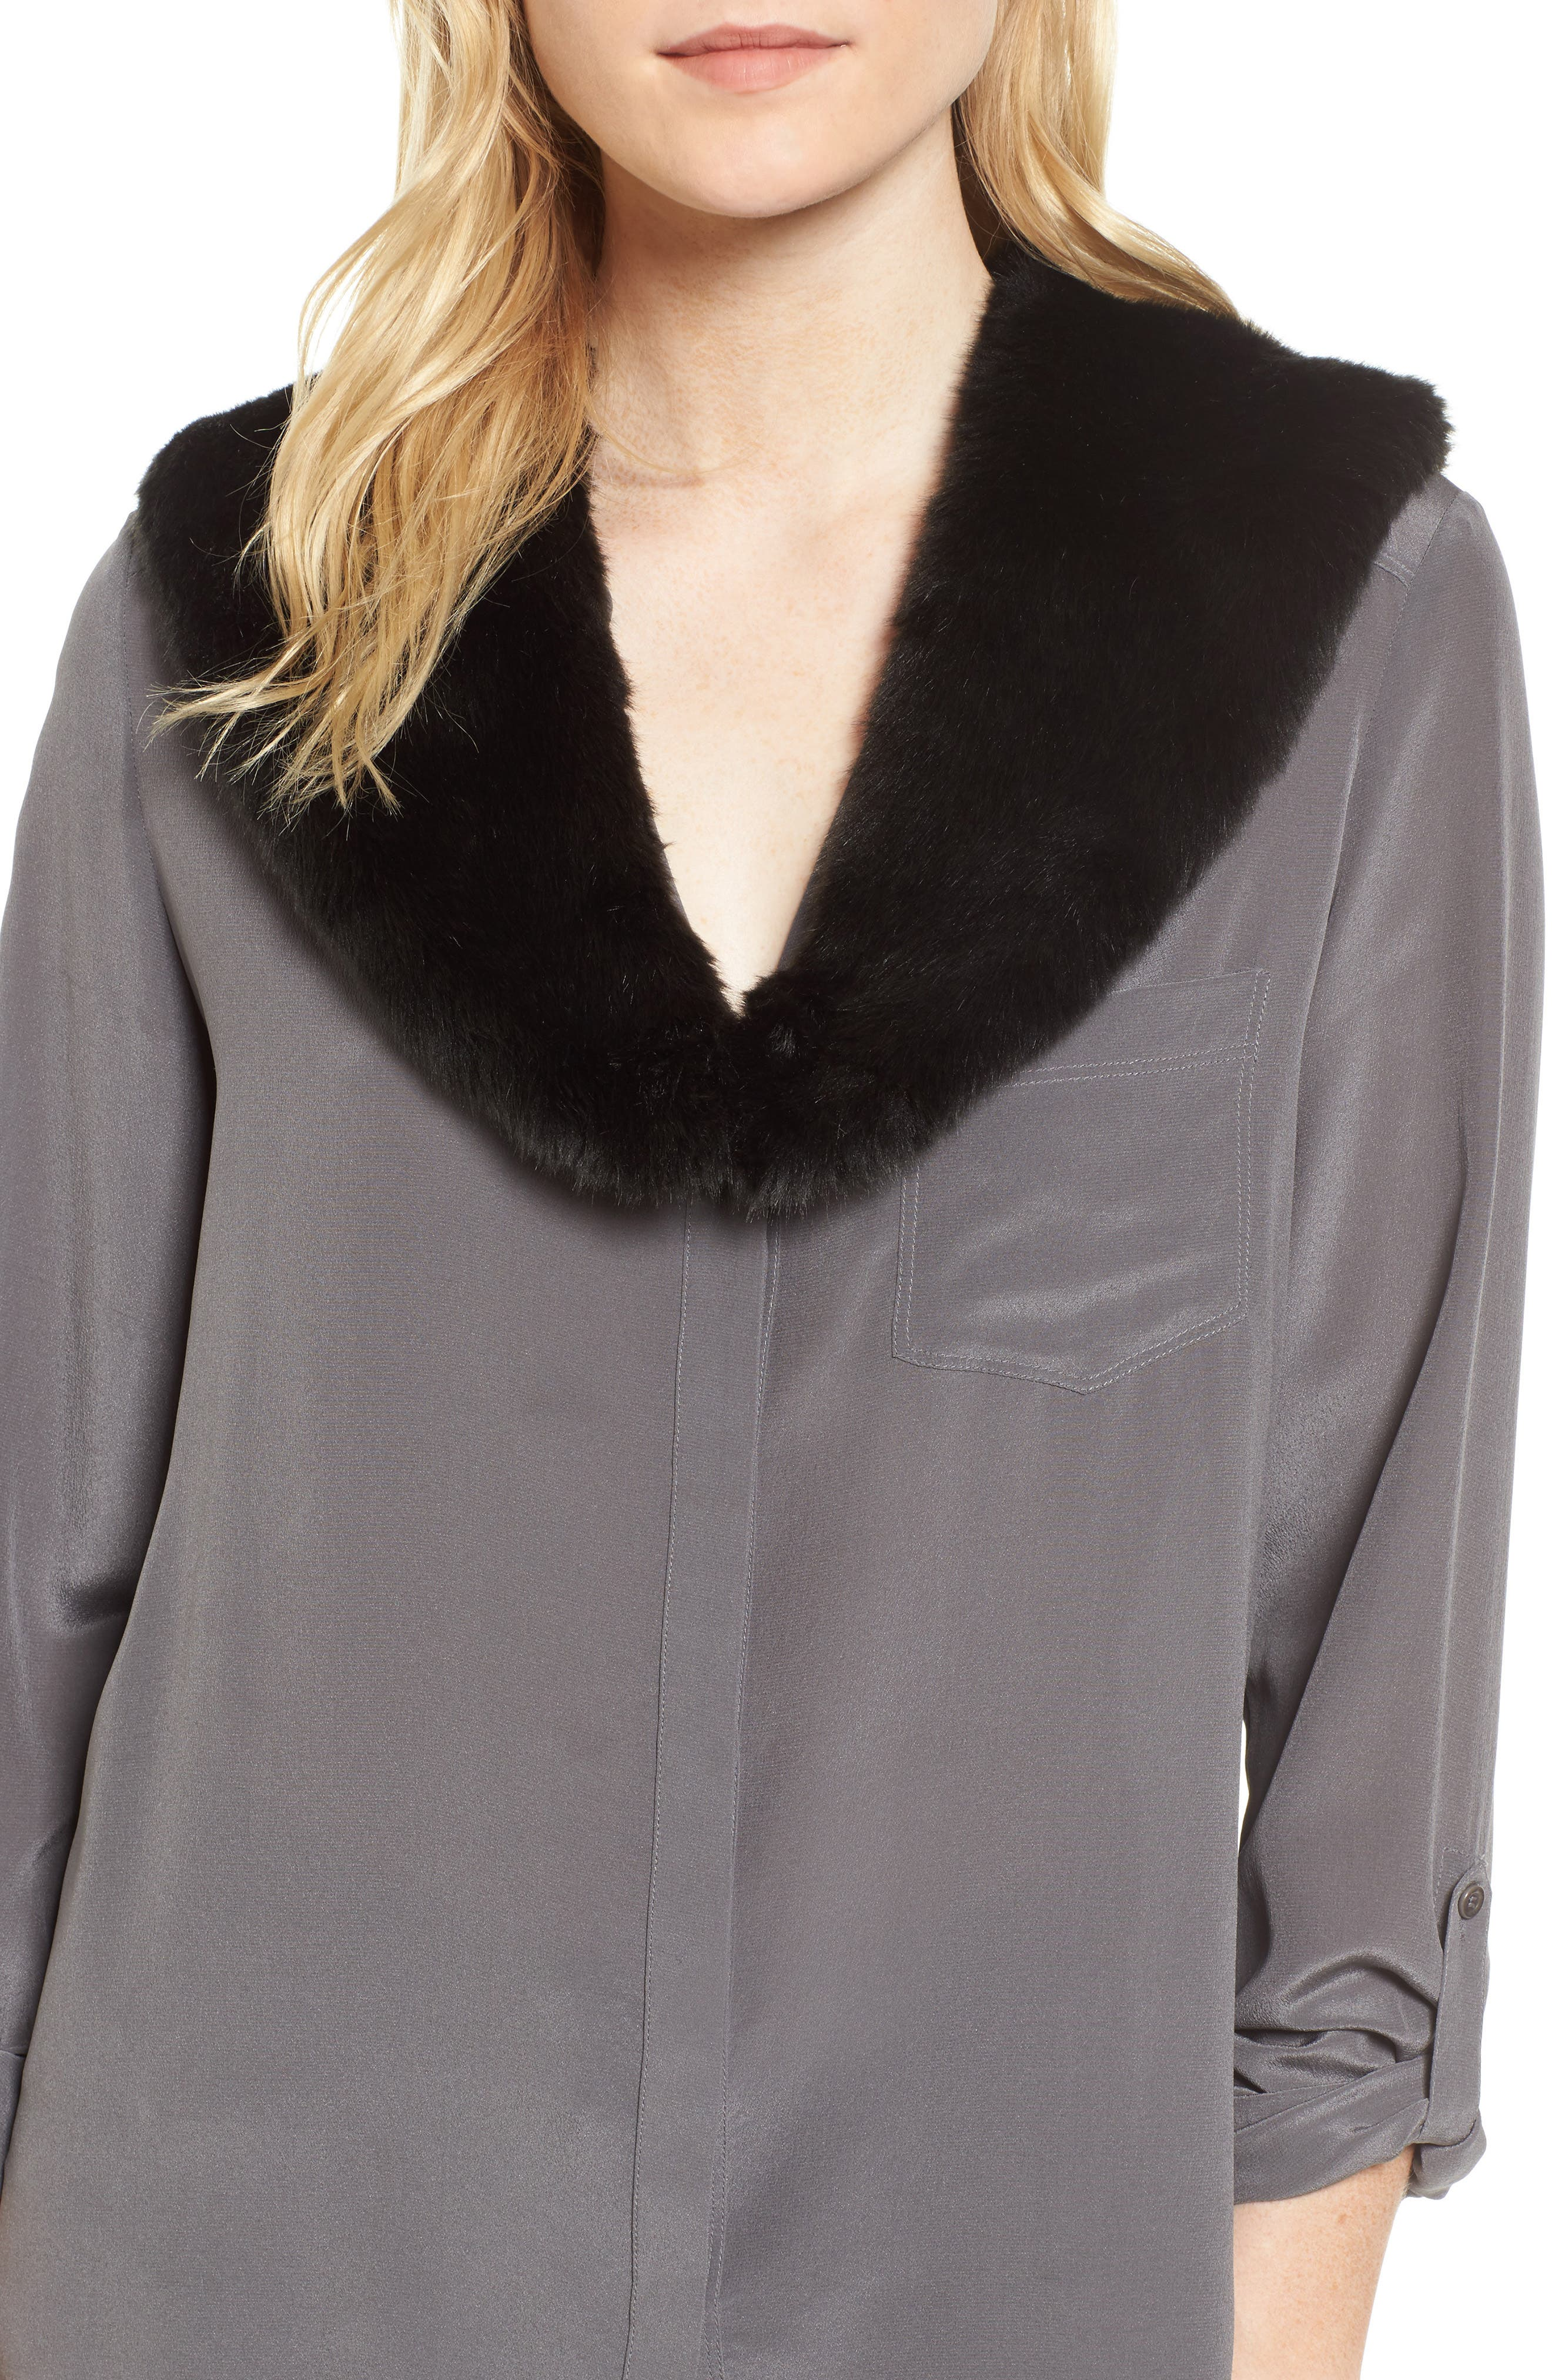 Badgley Mischka Faux Fur Collar,                             Main thumbnail 1, color,                             001